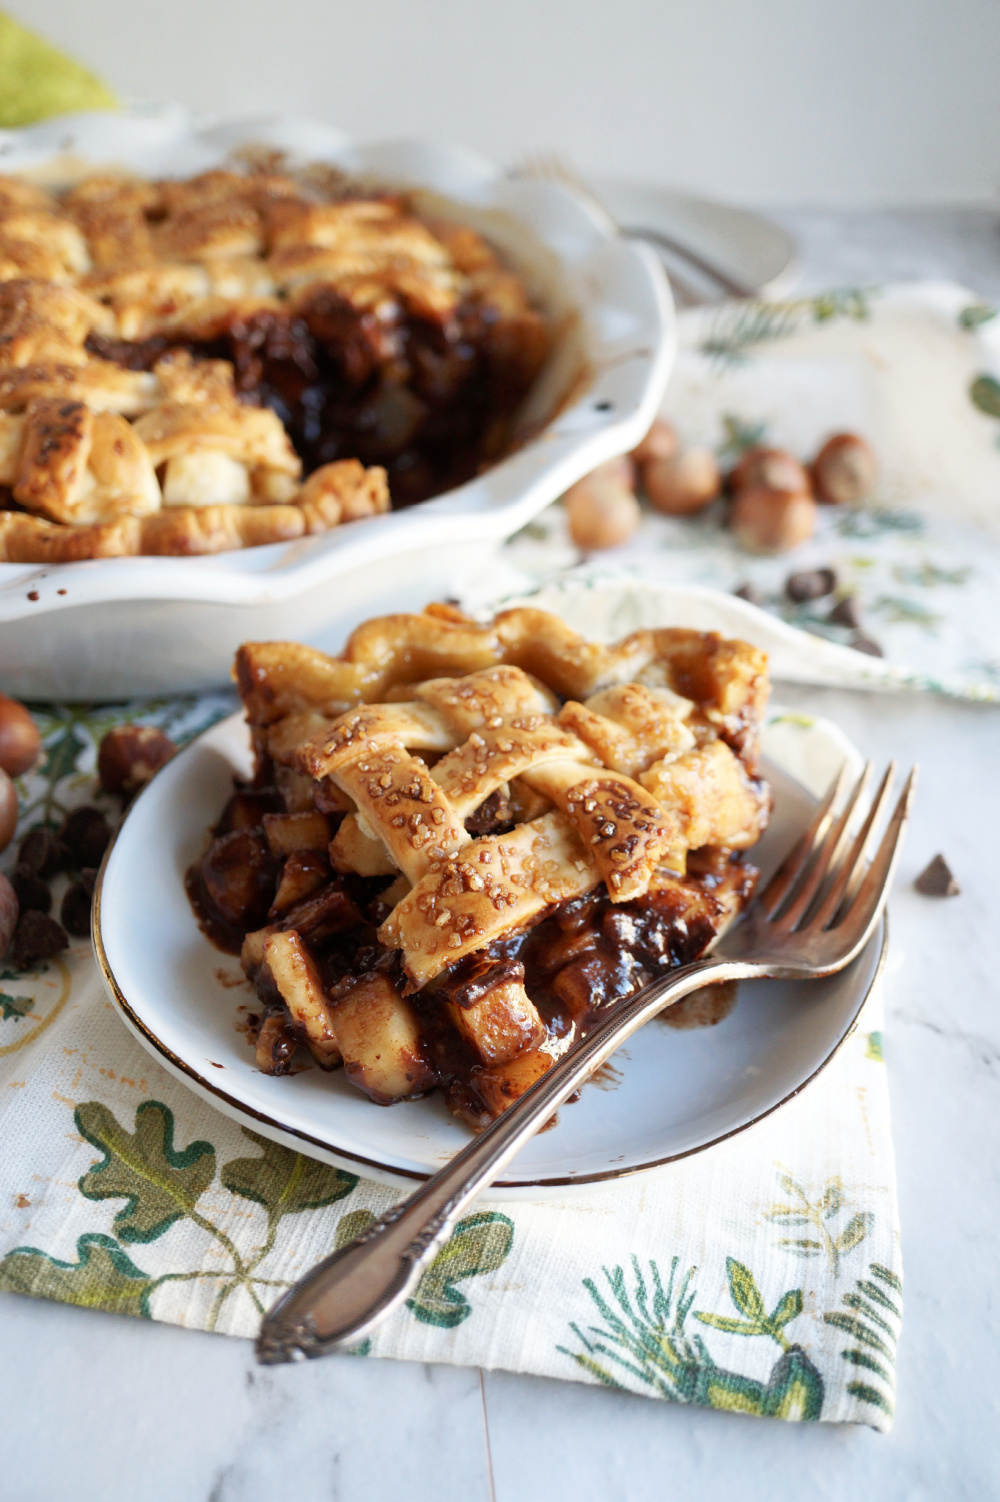 slice of chocolate hazelnut pear pie on a plate